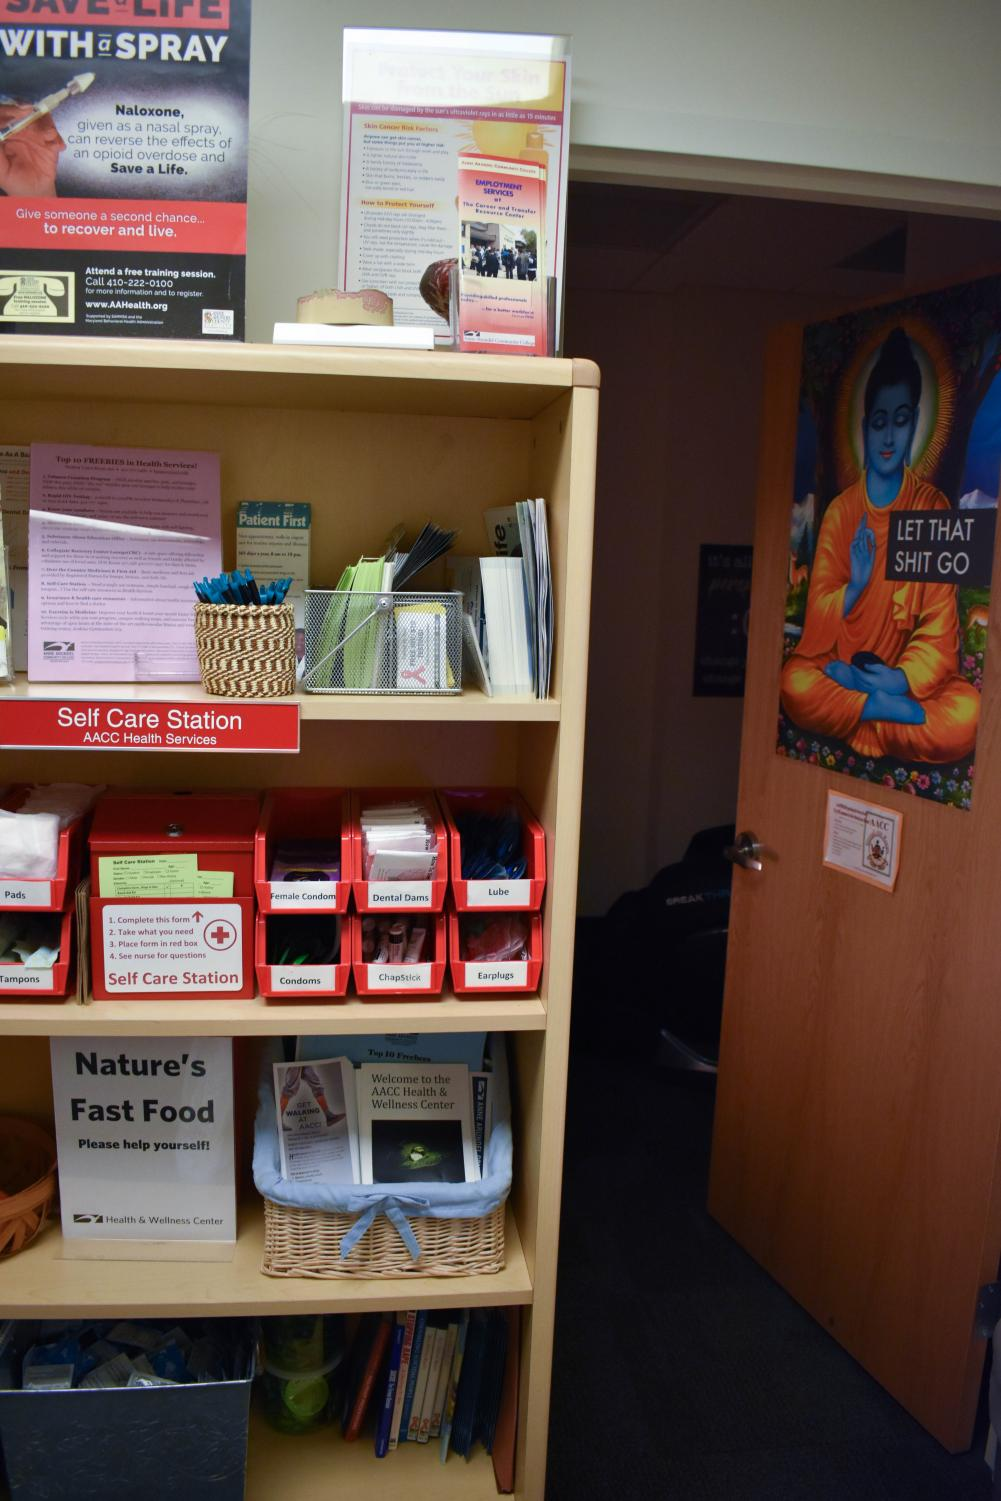 The Self-Care Station in the Health & Wellness Center offers free condoms, tampons, cough drops and more.